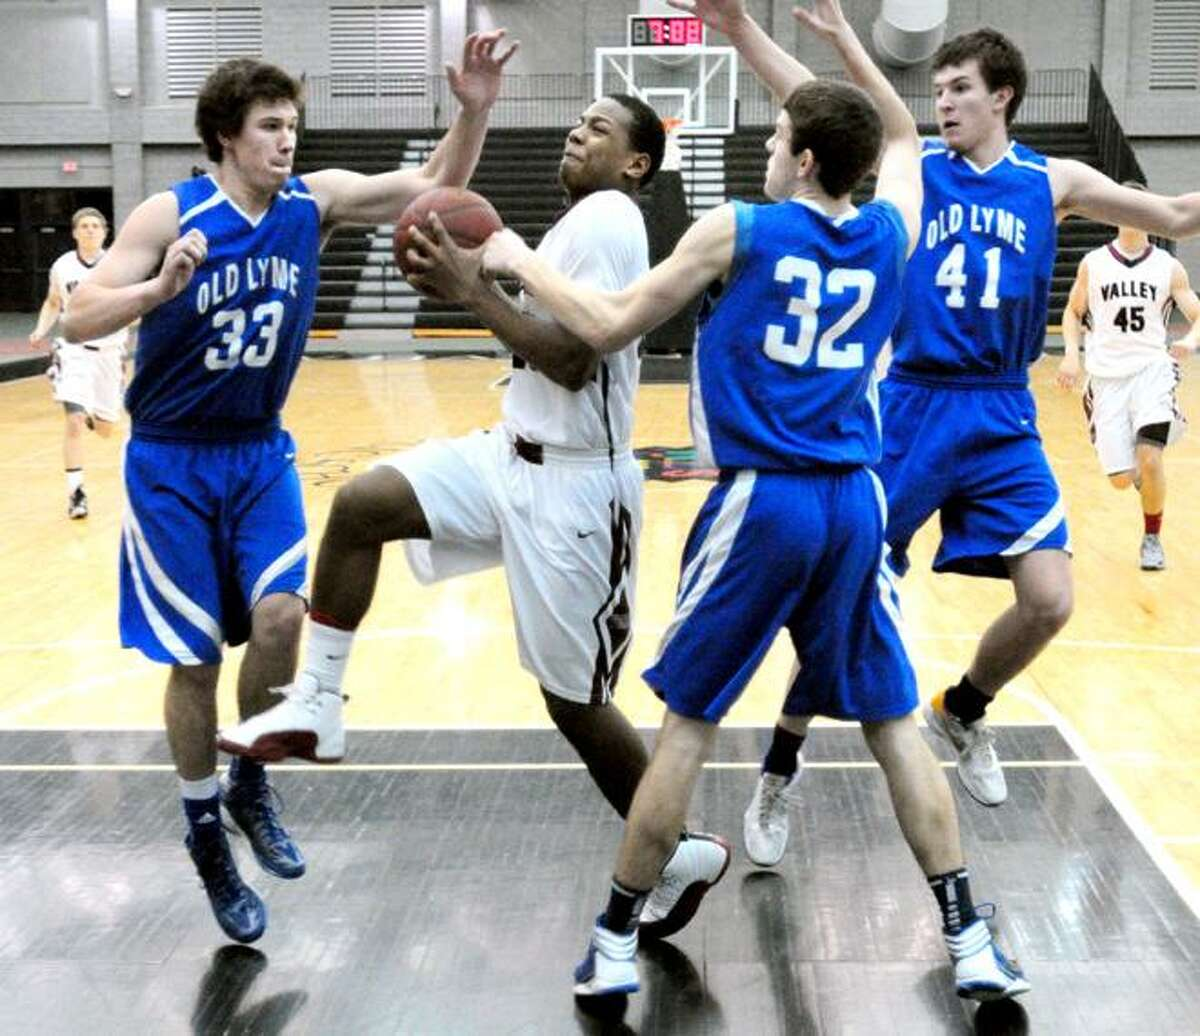 Christopher Jean-Pierre (center) of Valley Regional drives between Old Lyme players in the opening minutes of the Shoreline Conference Championship in New Haven on 3/1/2013. He was fouled on the play by Slater Gregory (left).Photo by Arnold Gold/New Haven Register